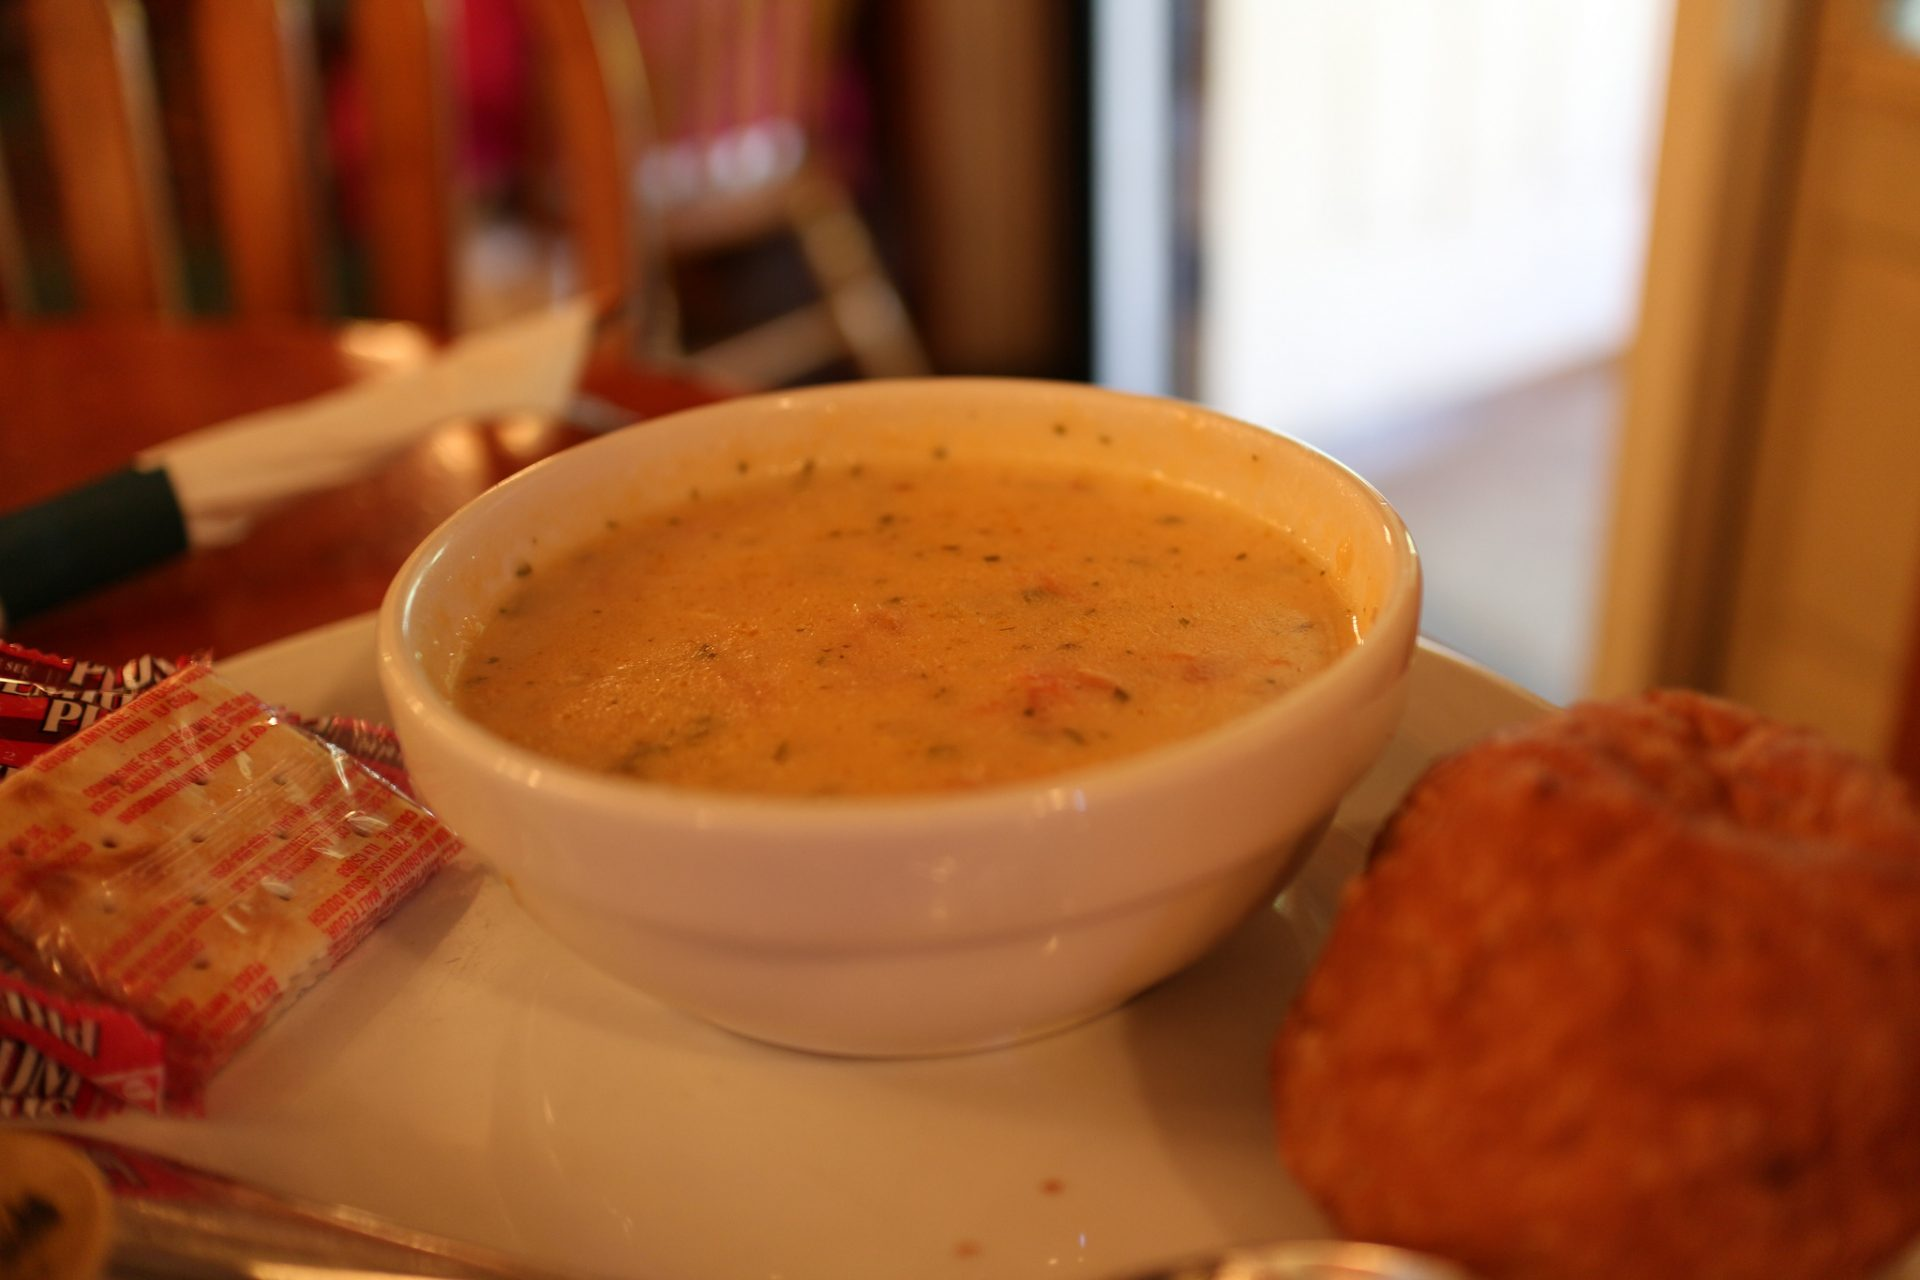 A Maine chowder is a brothy, milky soup full of fish, potato, and onions. (Image: Elsie Hui via flickr CC BY 2.0 )